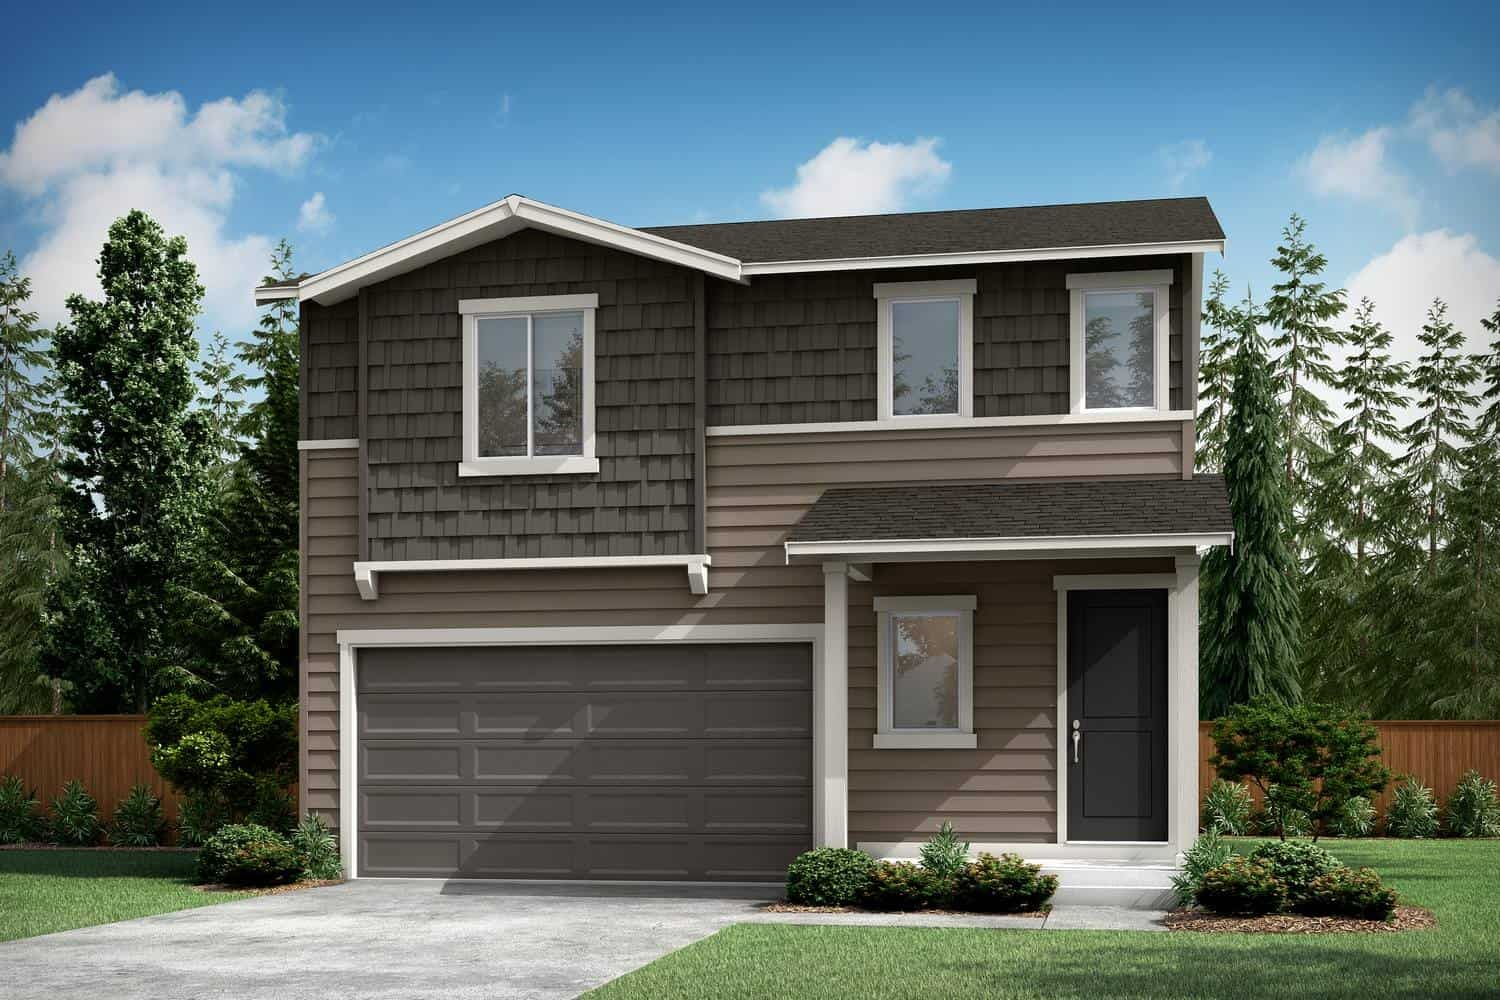 Exterior featured in the Plan A-220 By Tri Pointe Homes in Bremerton, WA